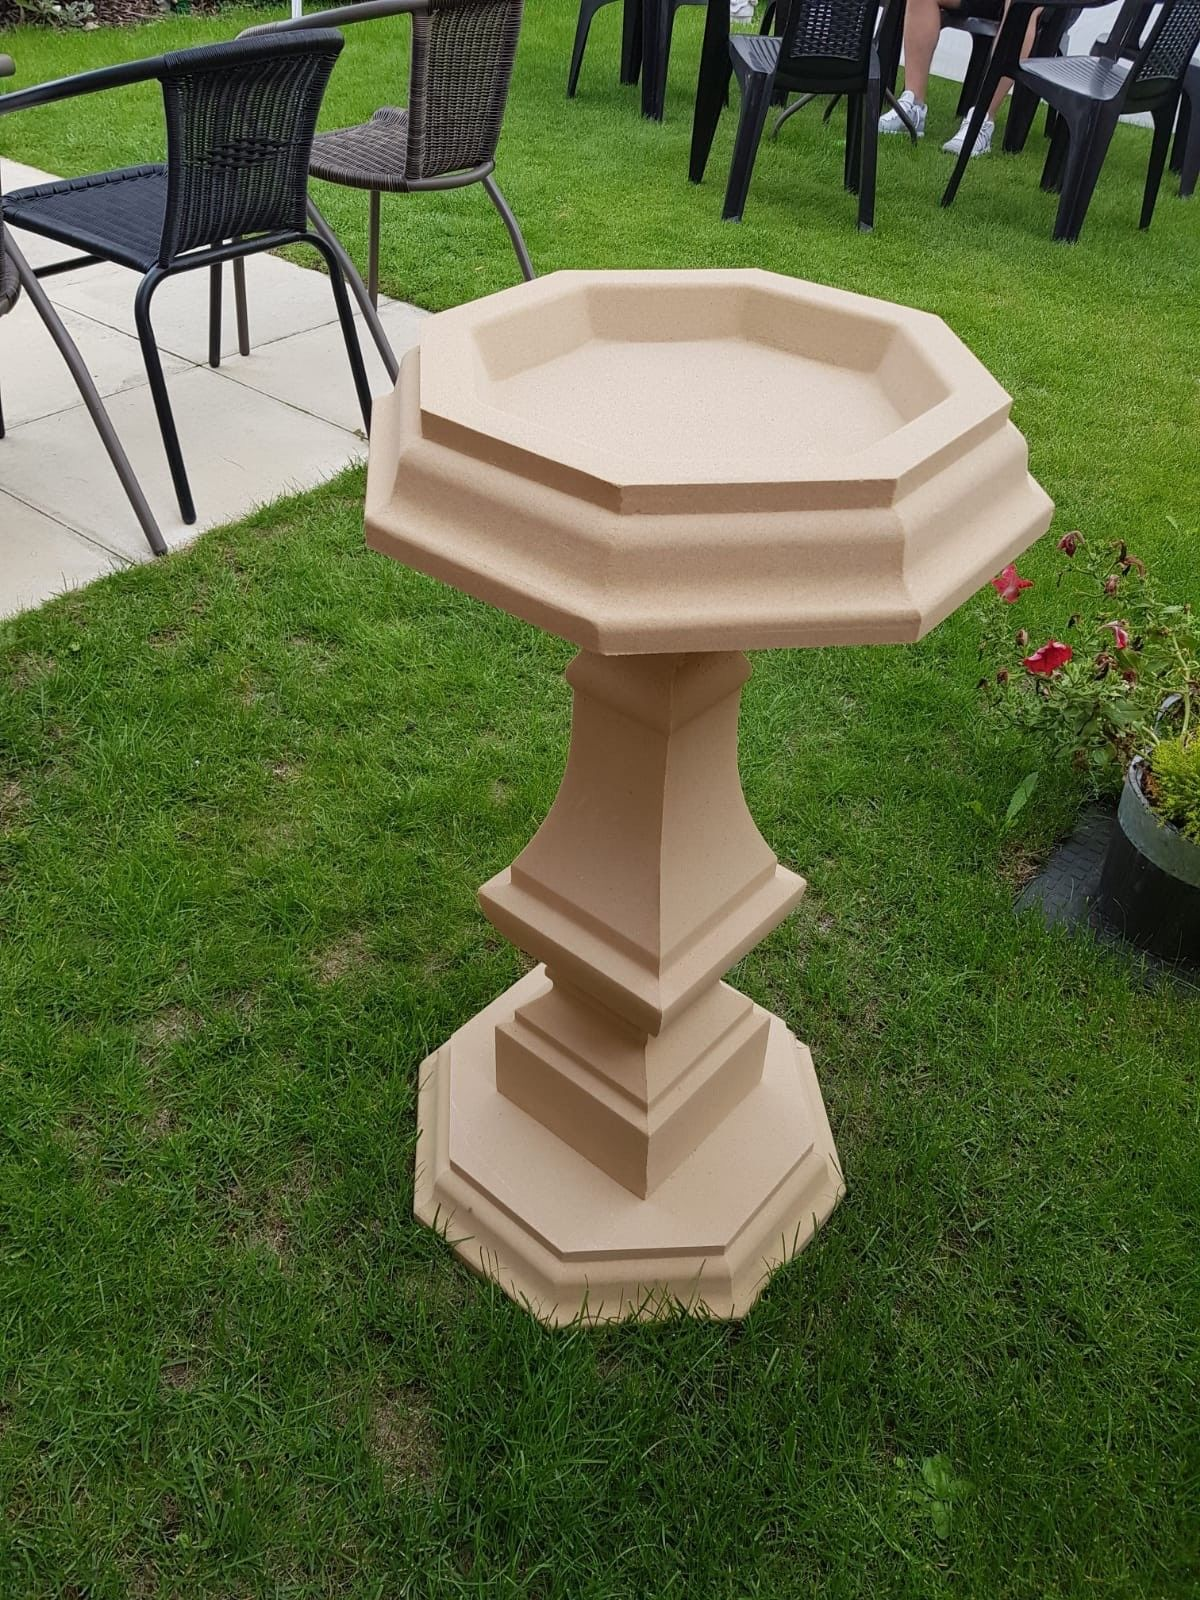 Polygon Spindle Bird Bath